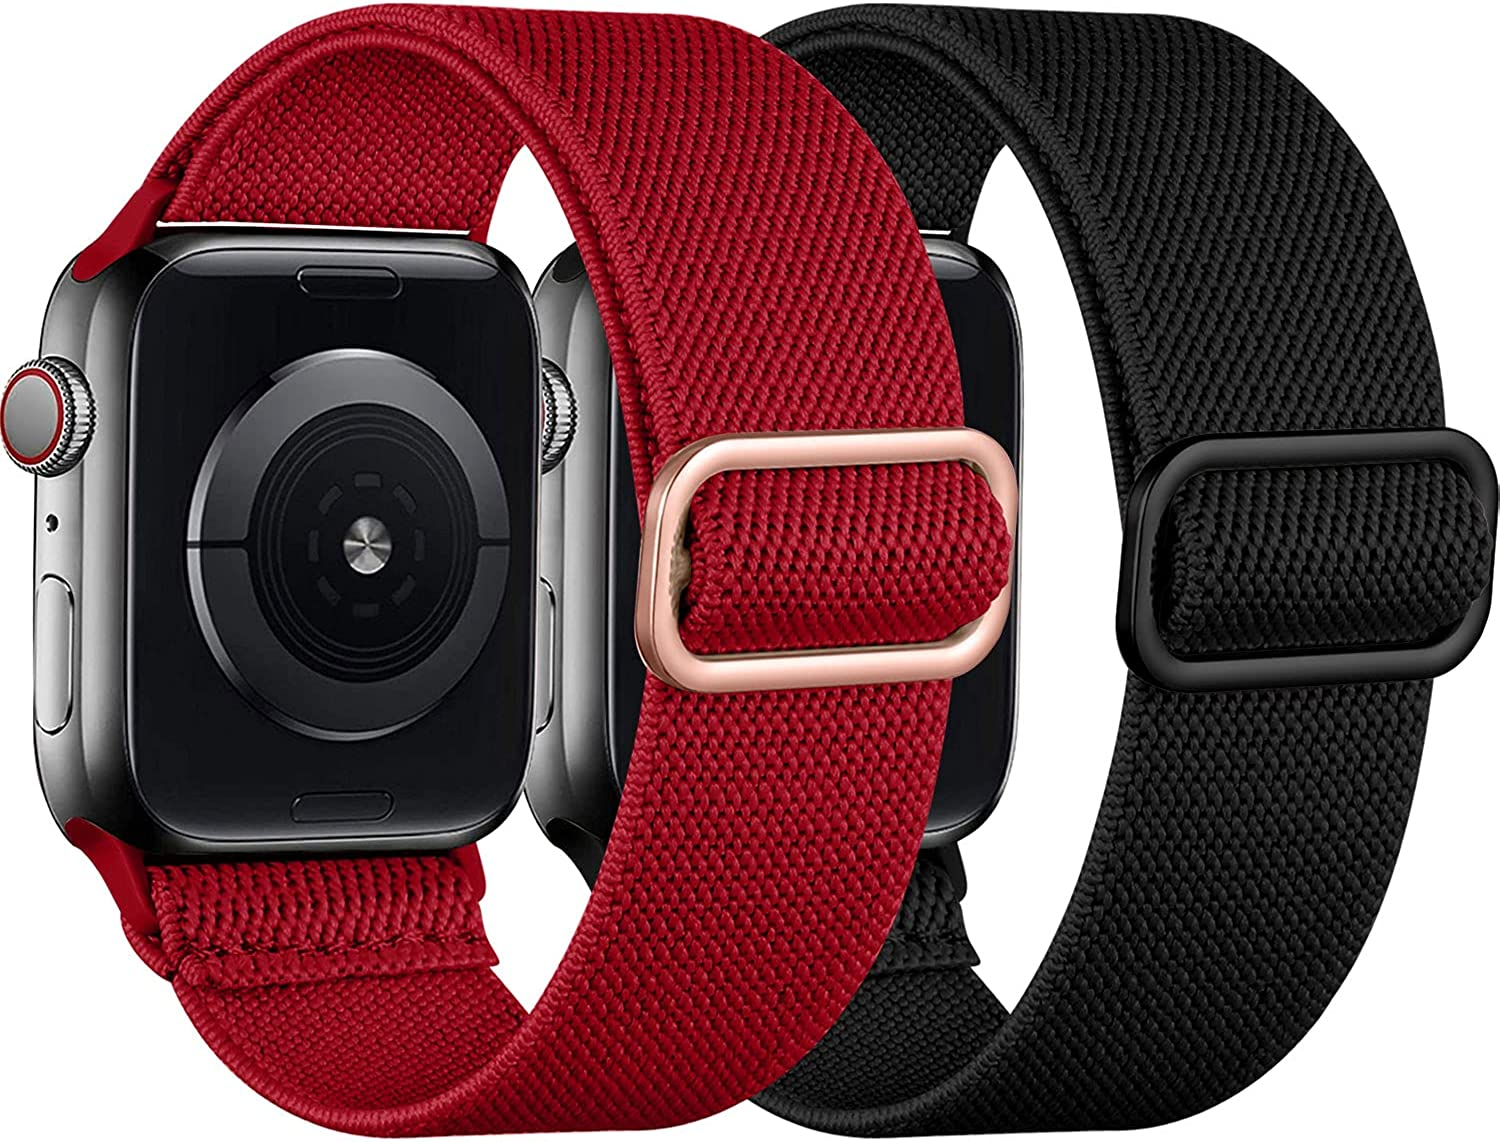 [2 Pack] SNBLK Compatible with Apple Watch Bands 45mm 44mm 42mm 41mm 40mm 38mm, Adjustable Stretchy Elastic Sport Nylon Strap Replacement Wristbands Compatible for iWatch Series 7 6 5 4 3 2 1 SE